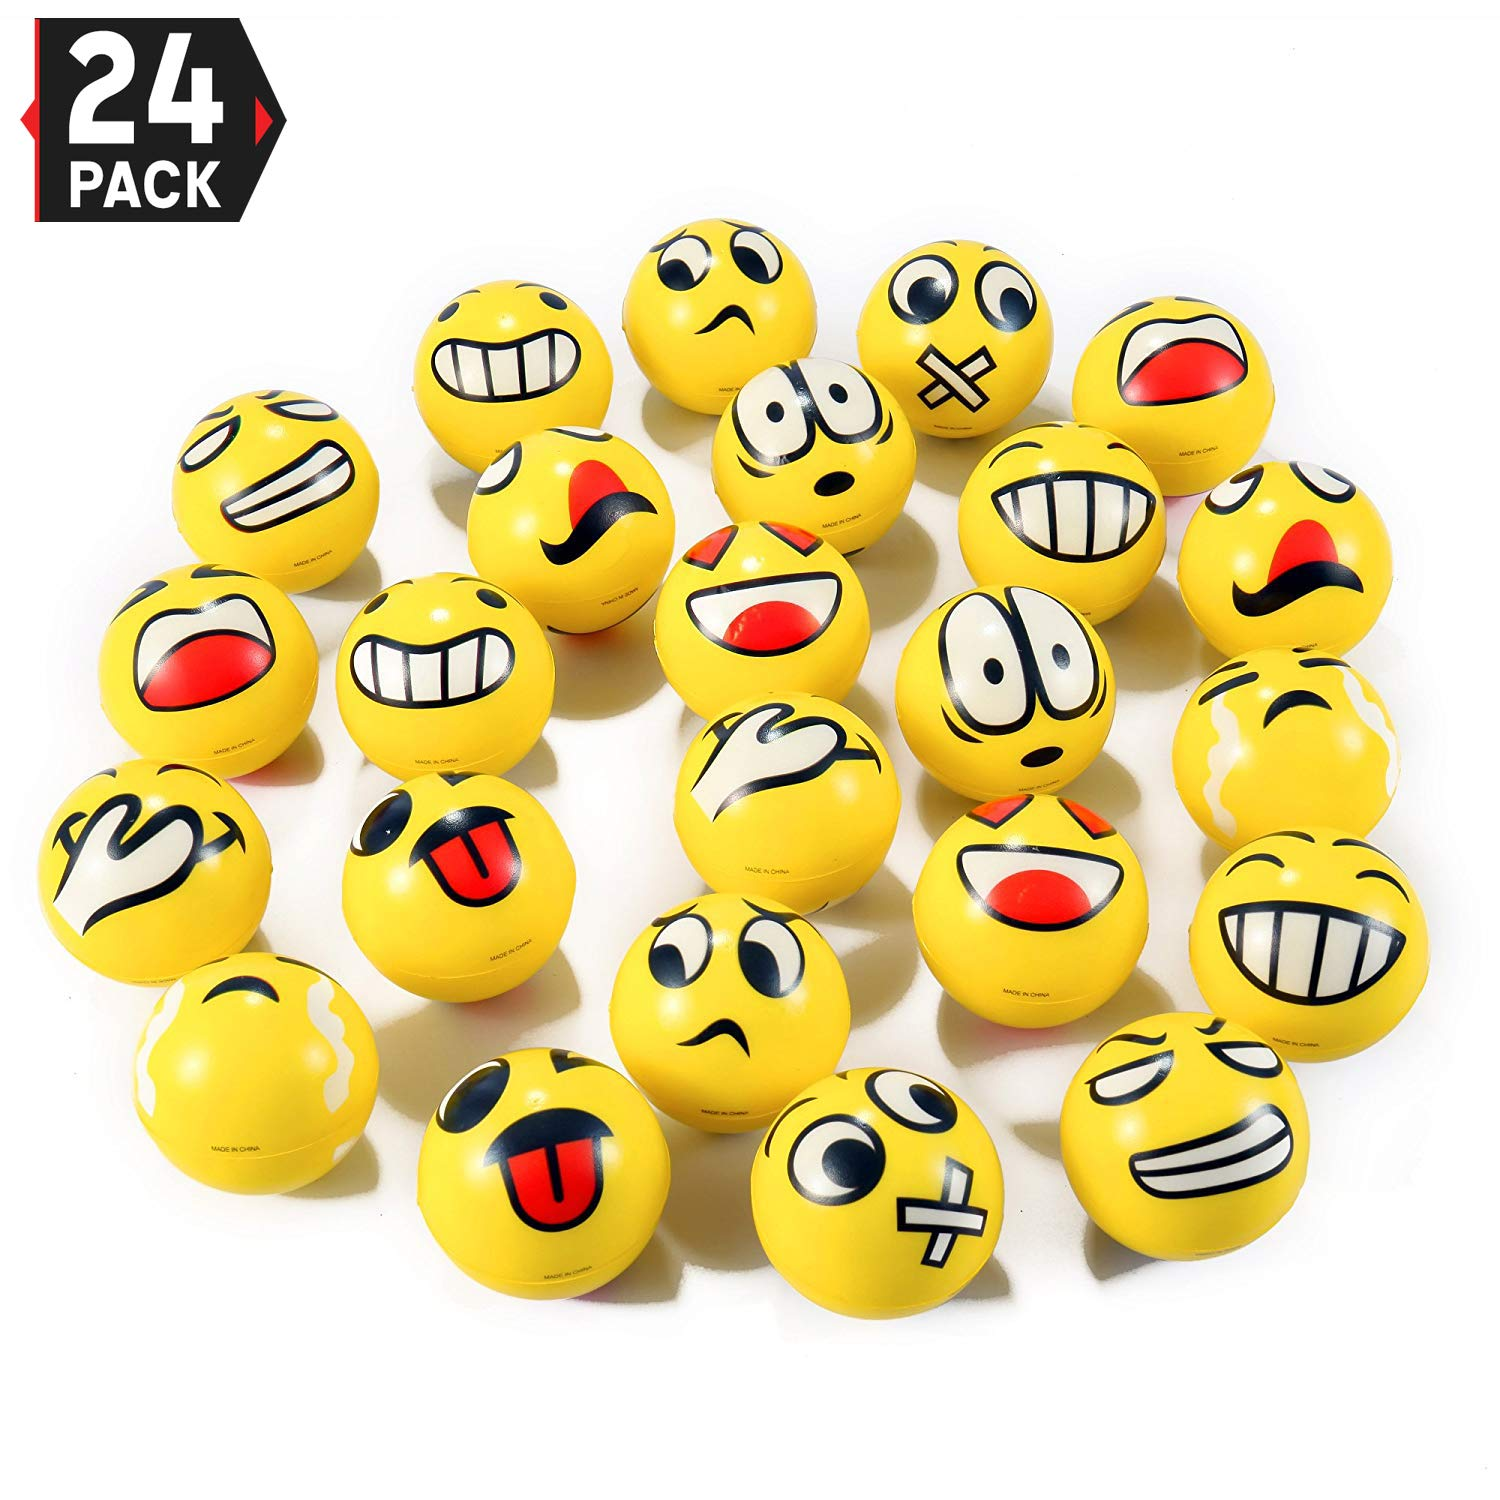 Liberty Imports Set of 24 Face Emoji Stress Balls Bulk - Soft Foam Stress Ball Squeeze Toys for Kids (3 inches)